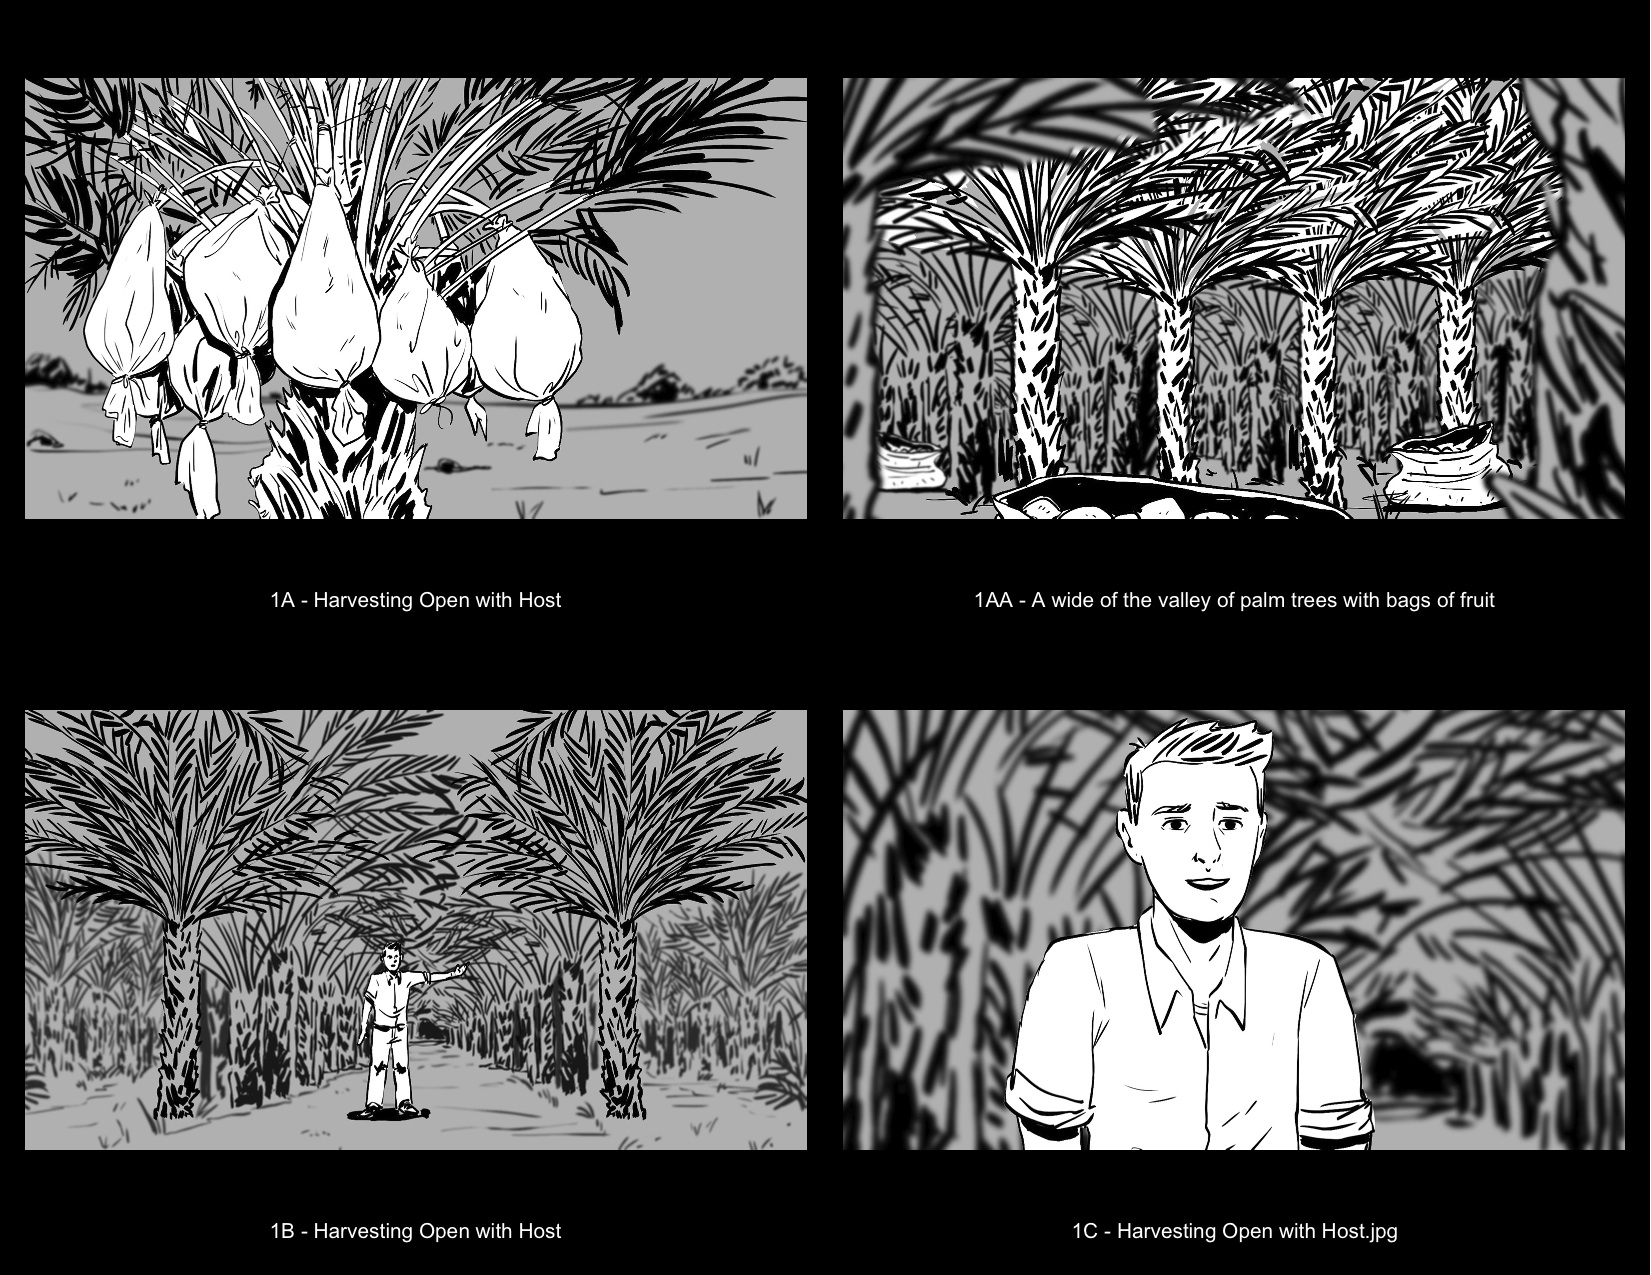 Double Dates Packing Storyboards_Final-1.jpg